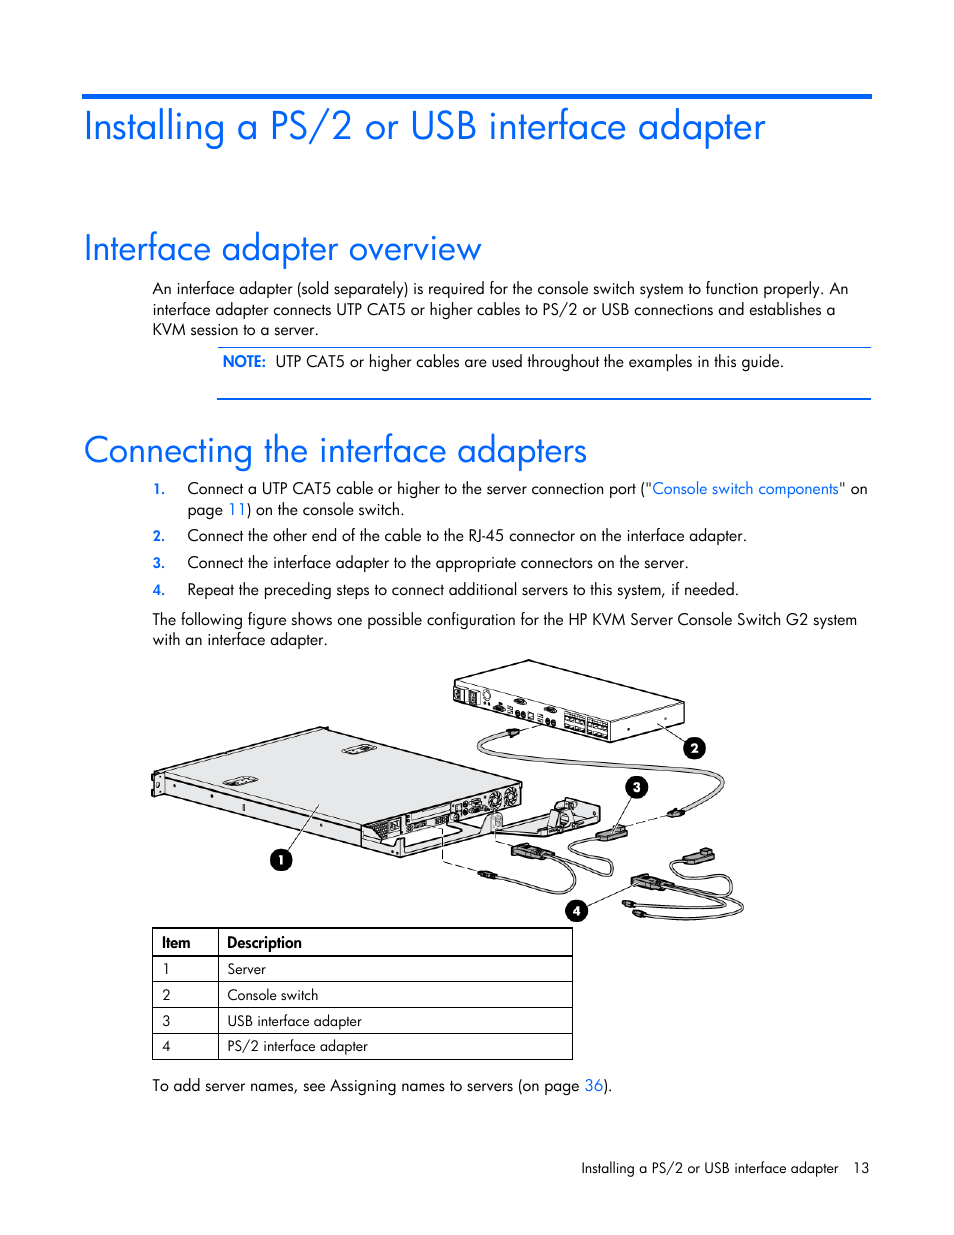 medium resolution of installing a ps 2 or usb interface adapter interface adapter overview connecting the interface adapters hp compaq server console switches user manual